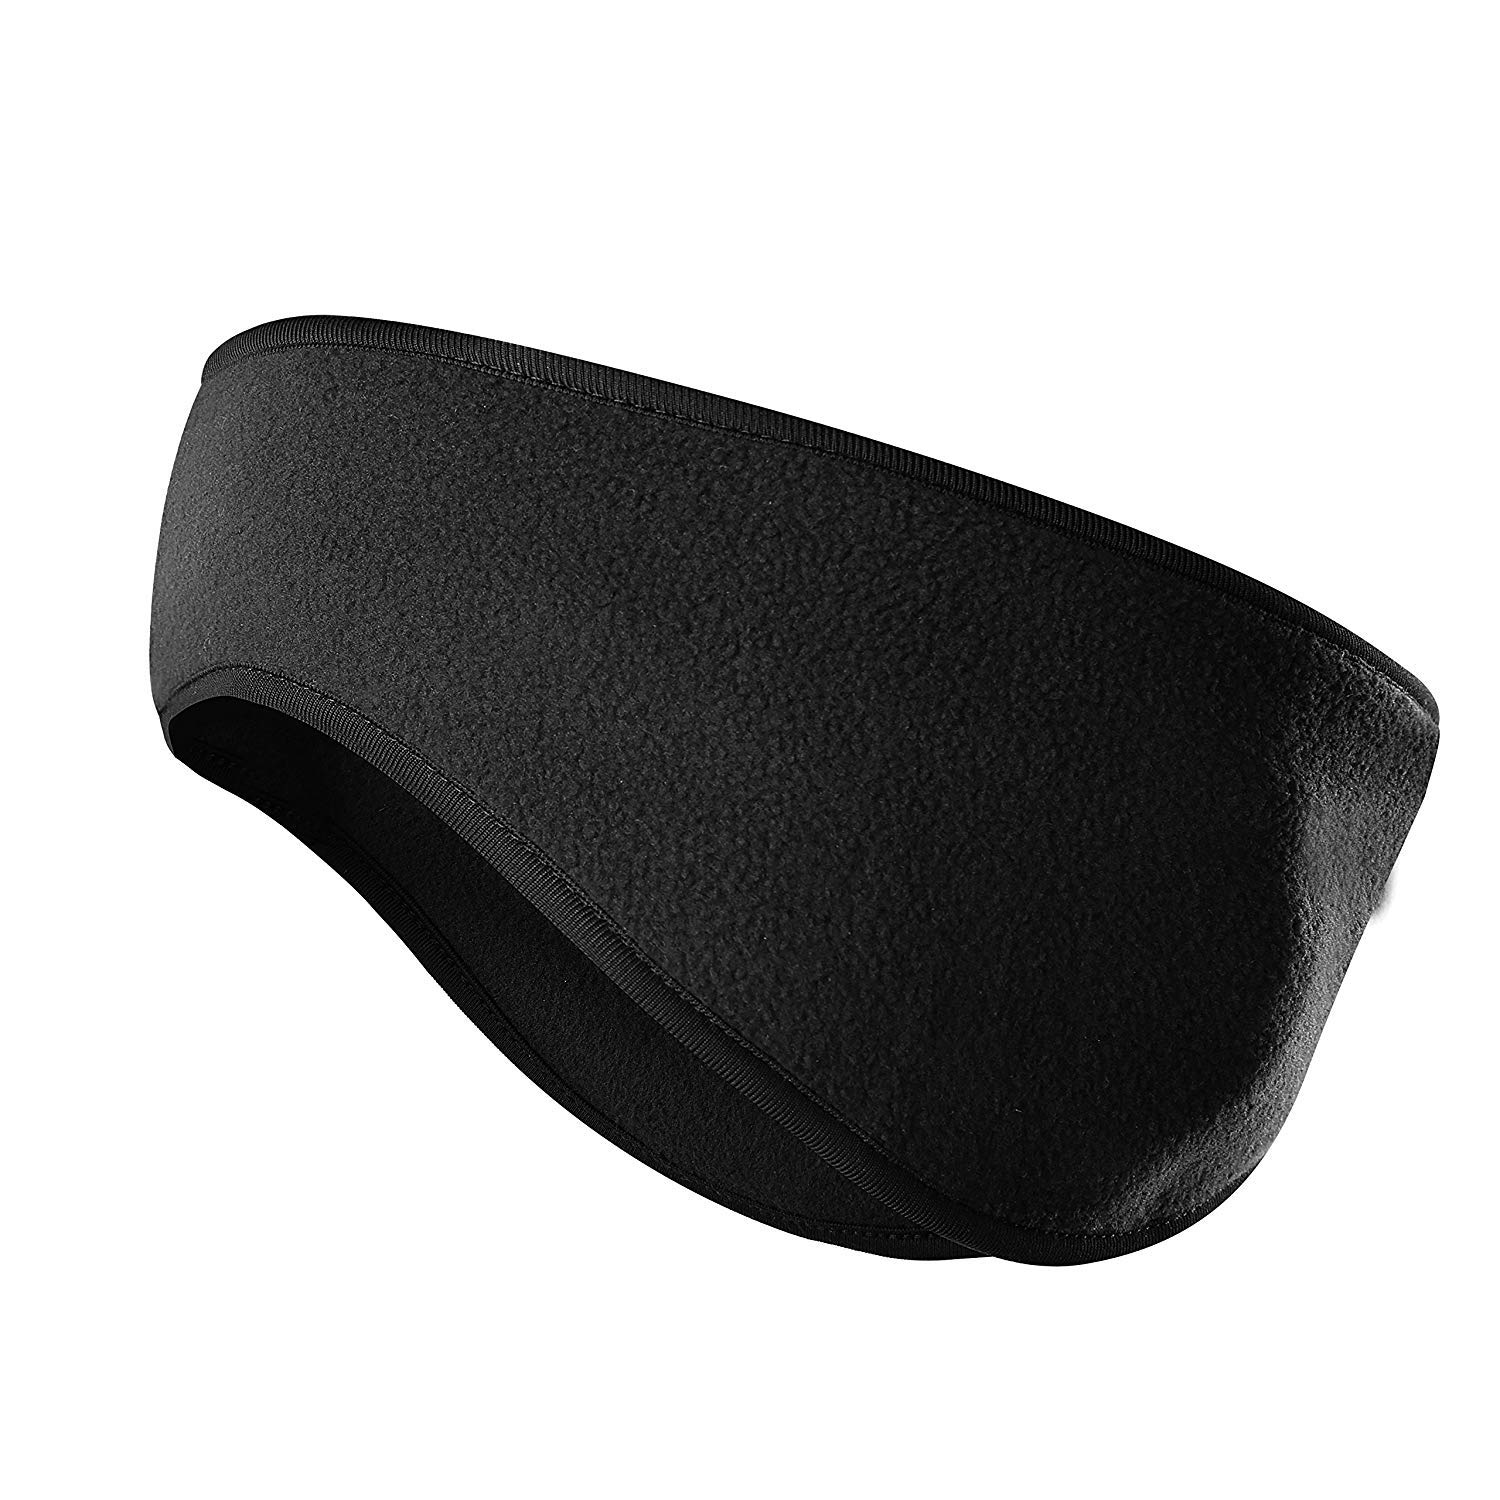 Fleece Ear Warmers/Muffs Headband for Men & Women, Perfect for Winter Running Yoga Skiing Riding bike in Cold Freezing Days